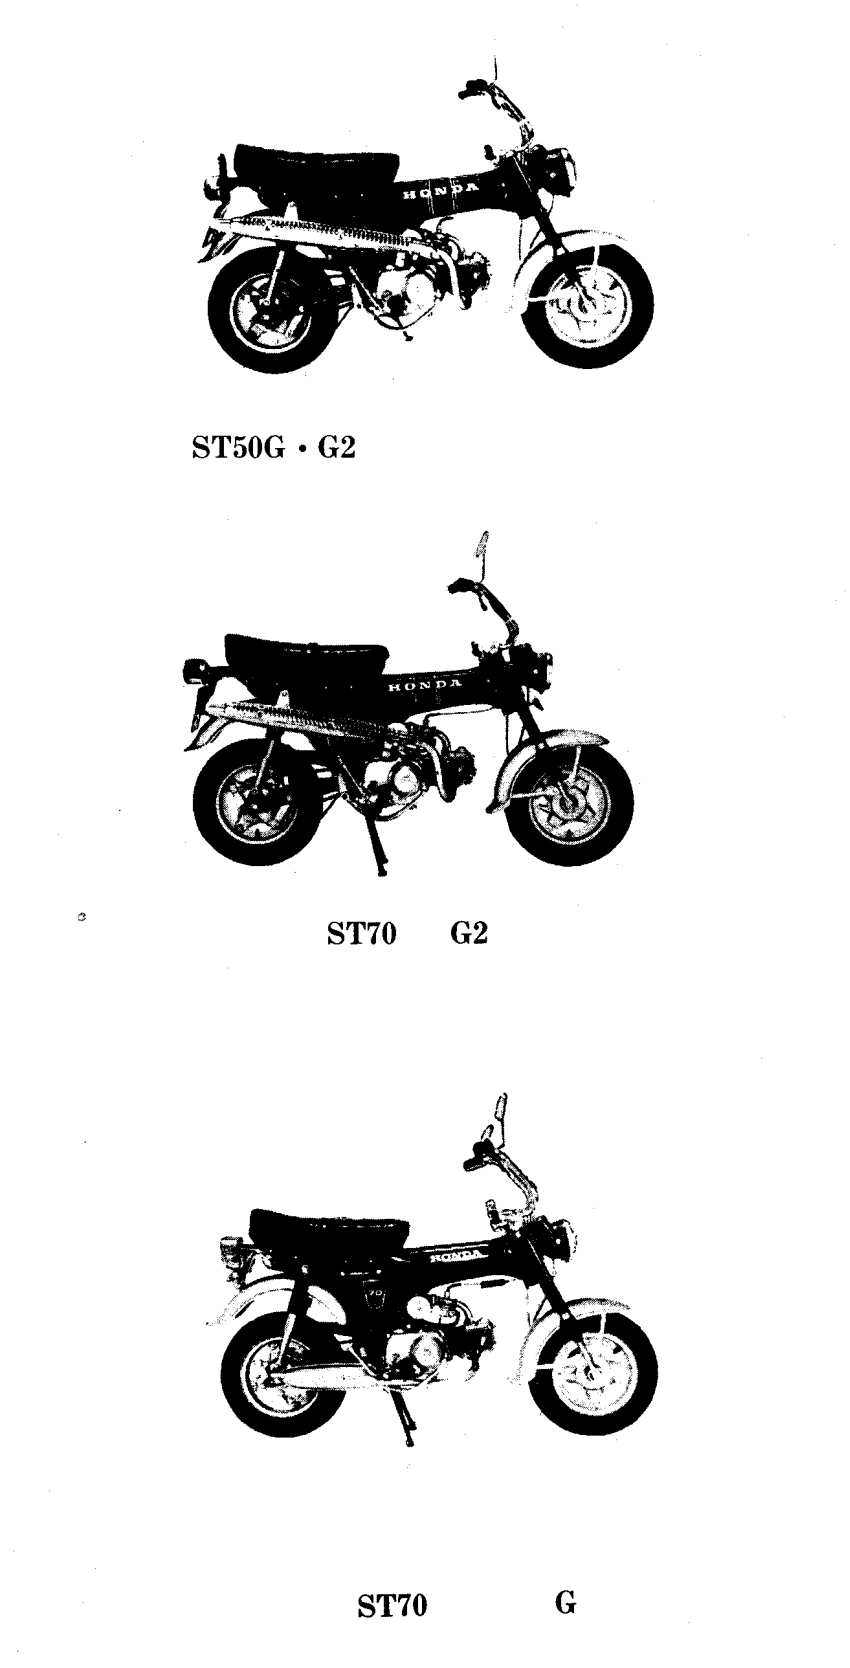 Parts list for Honda ST50G and ST70G